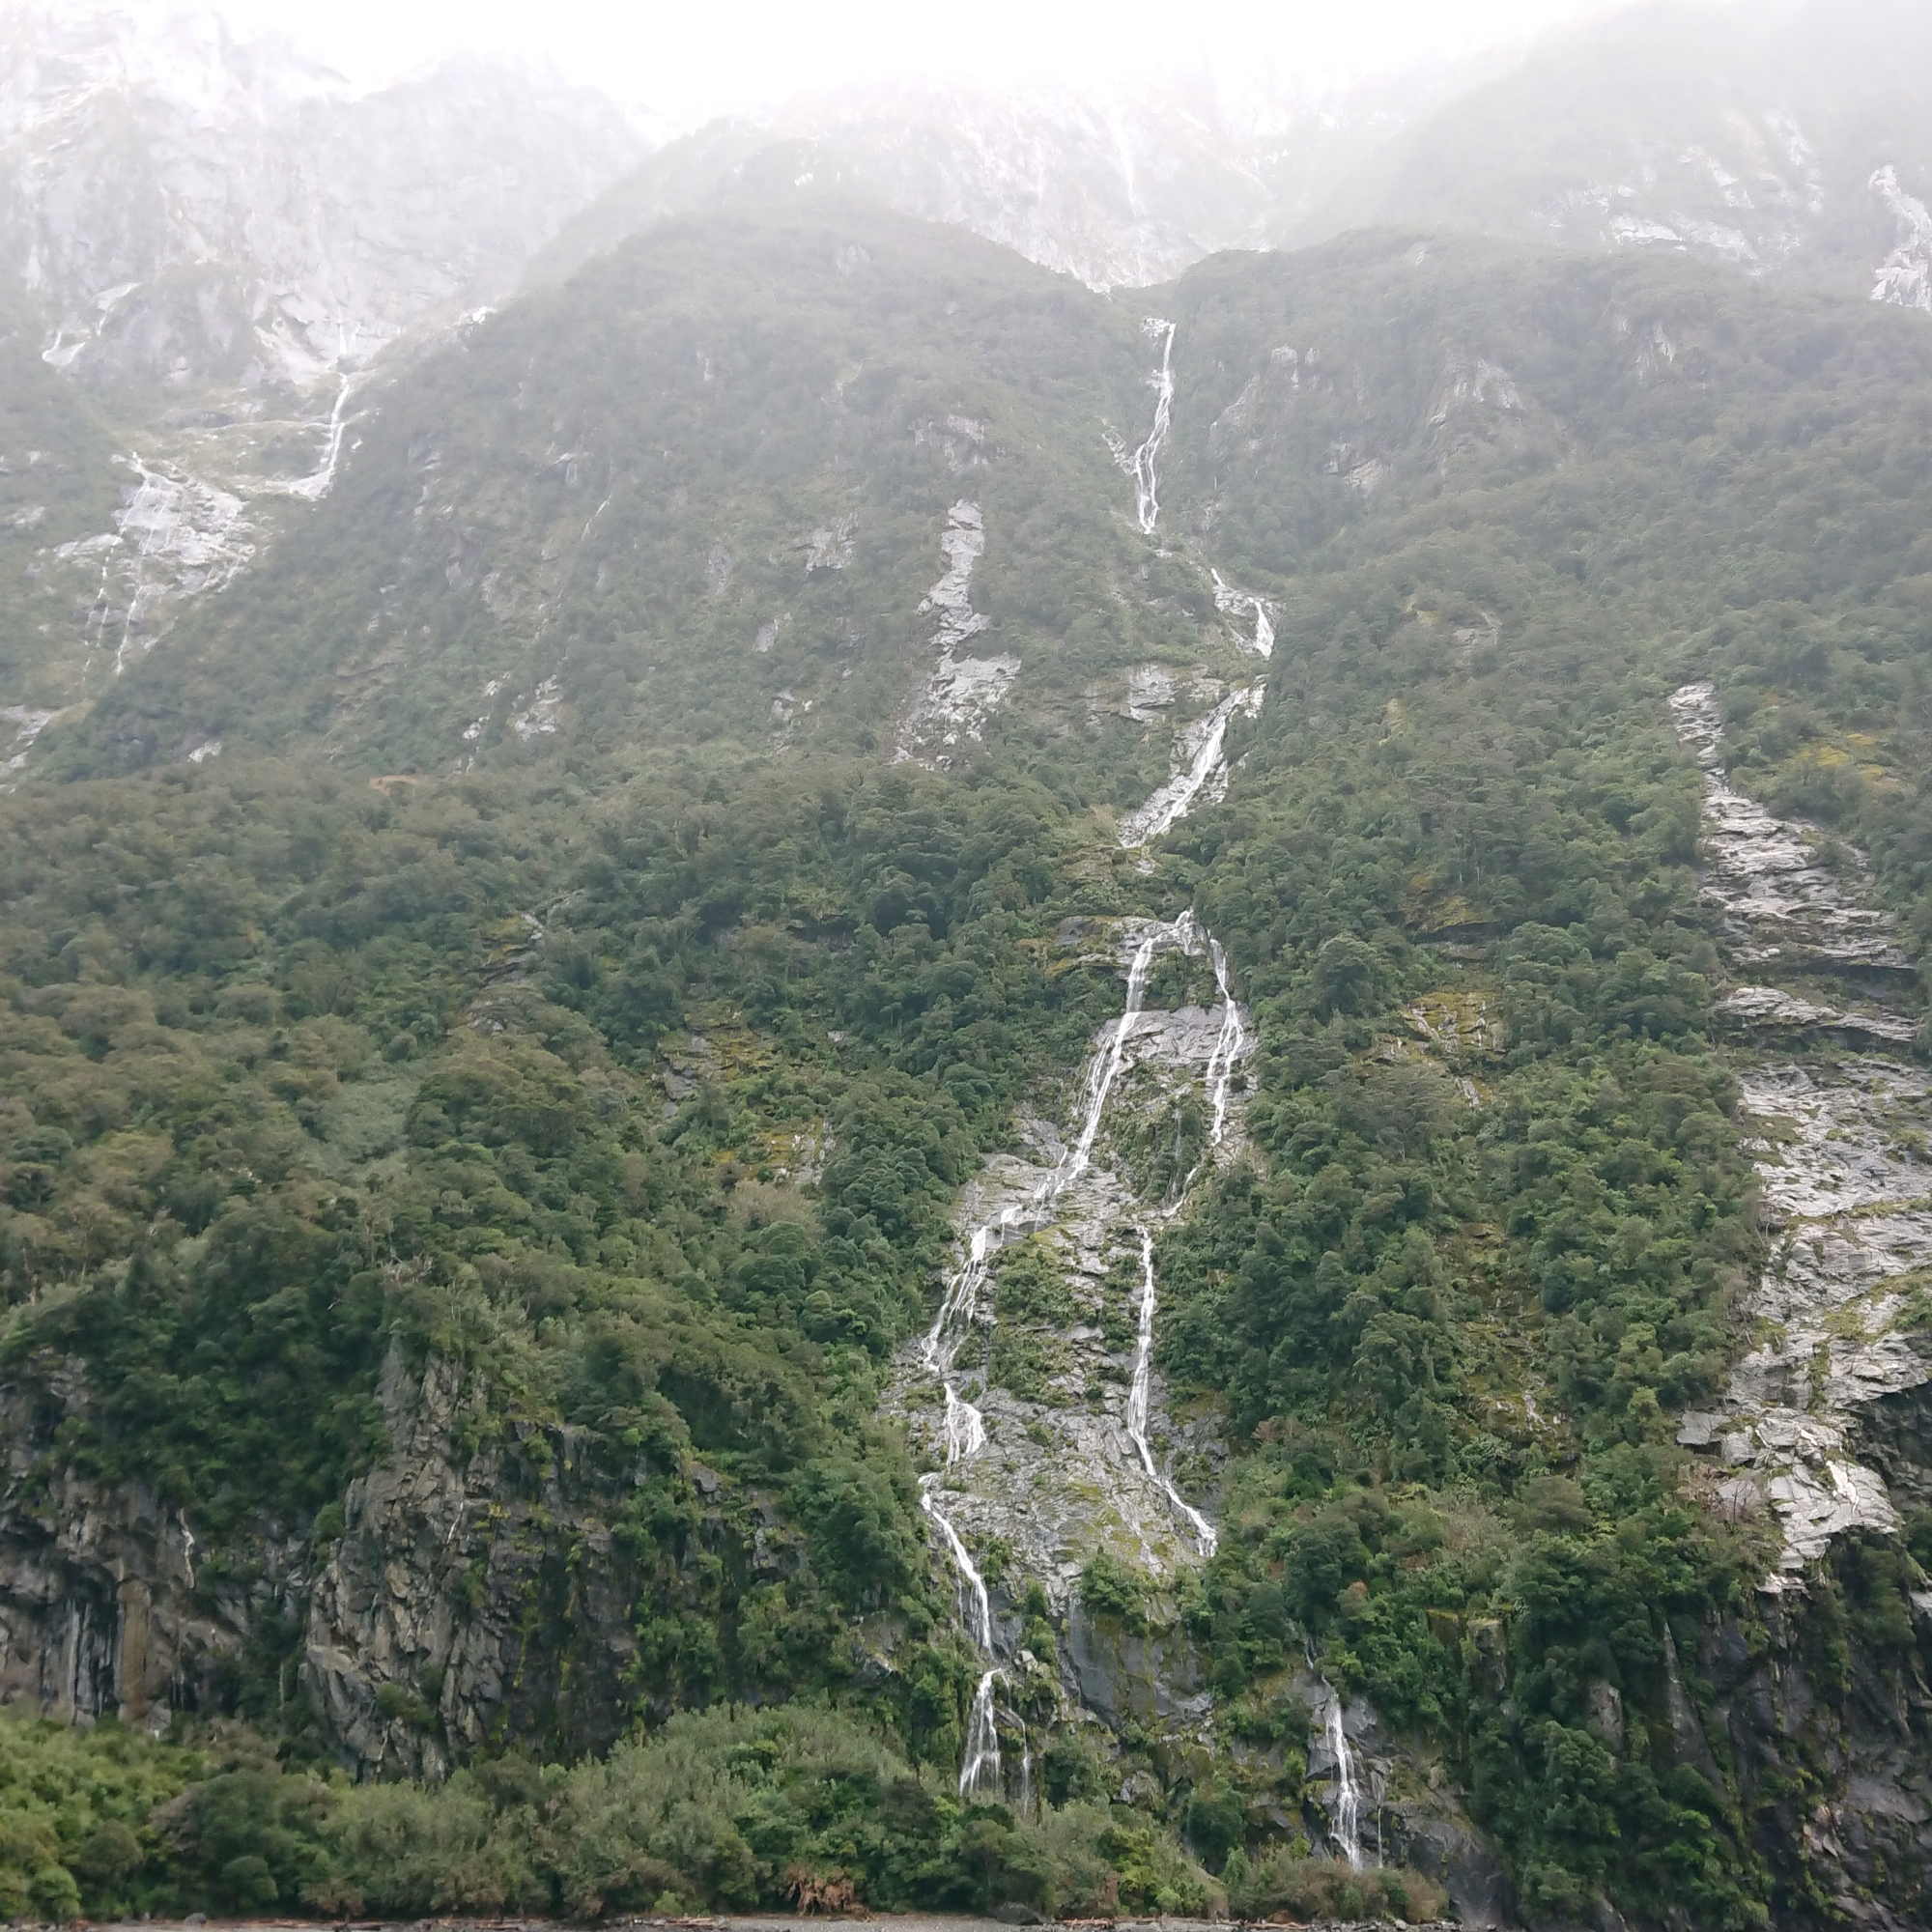 Looking up the waterfalls at Milford Sound